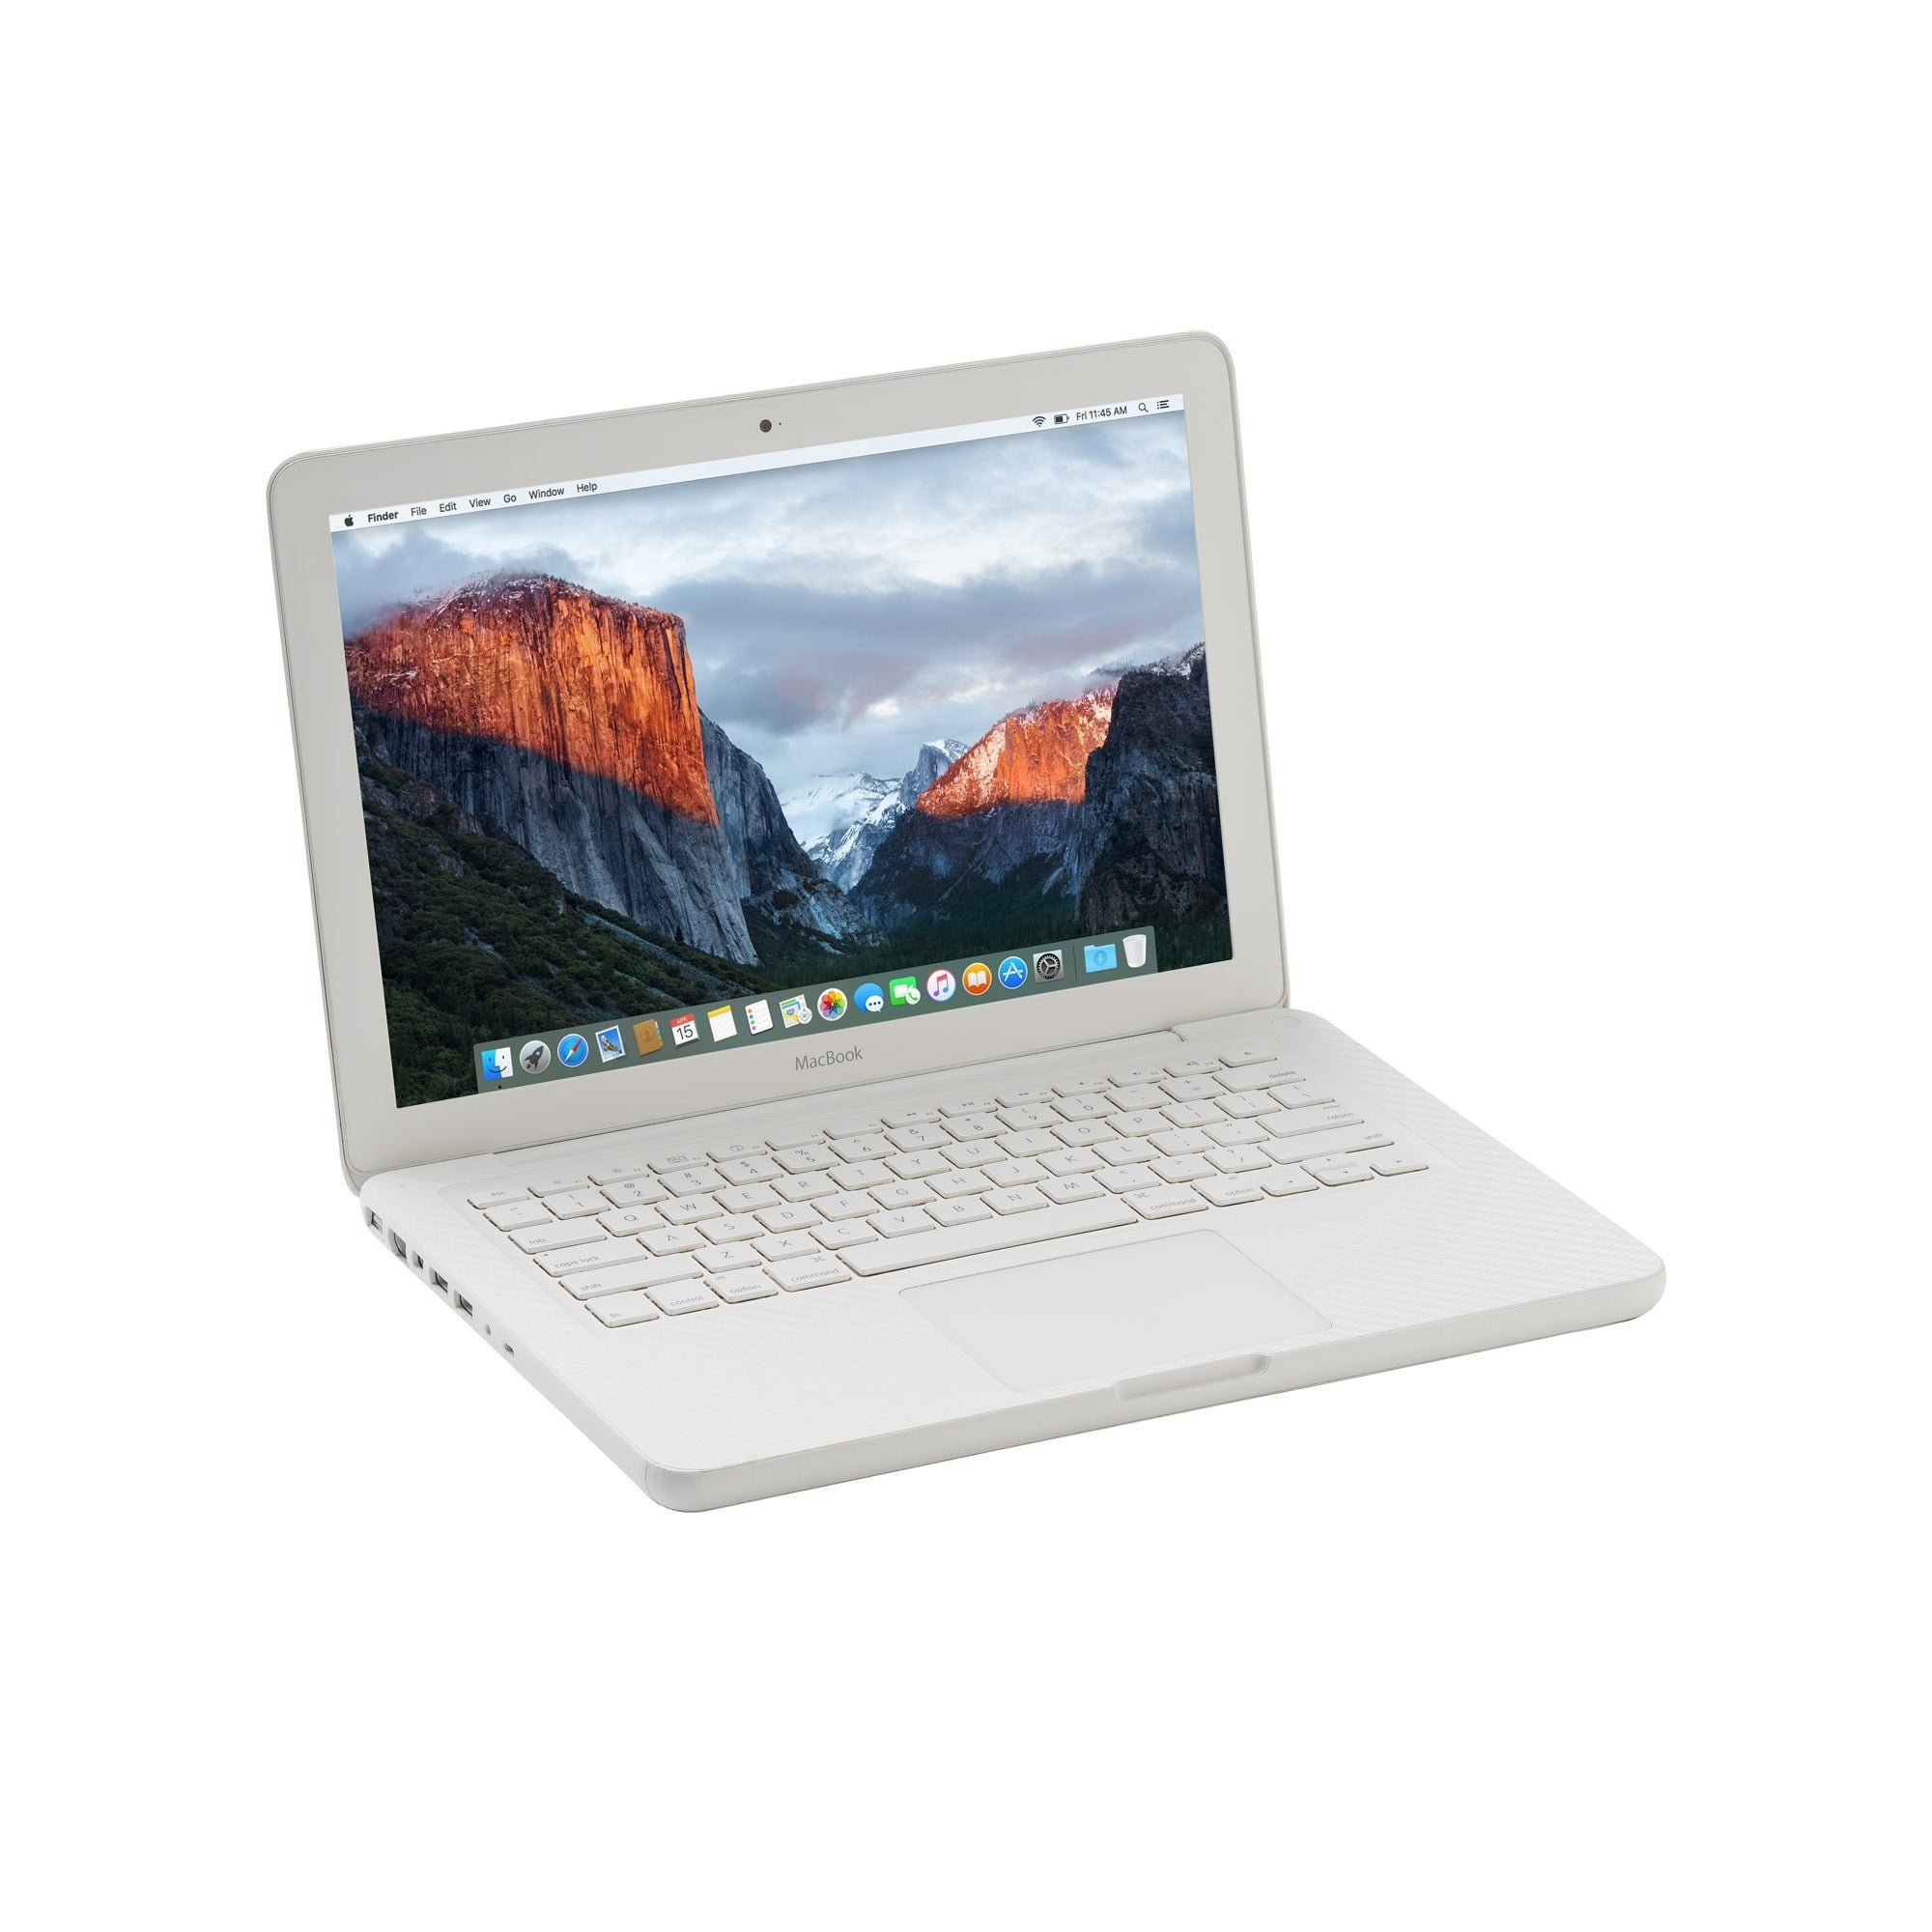 "Apple MacBook Core 2 Duo MC207LLA 2.26GHz 2GB 250GB 13.3""..."